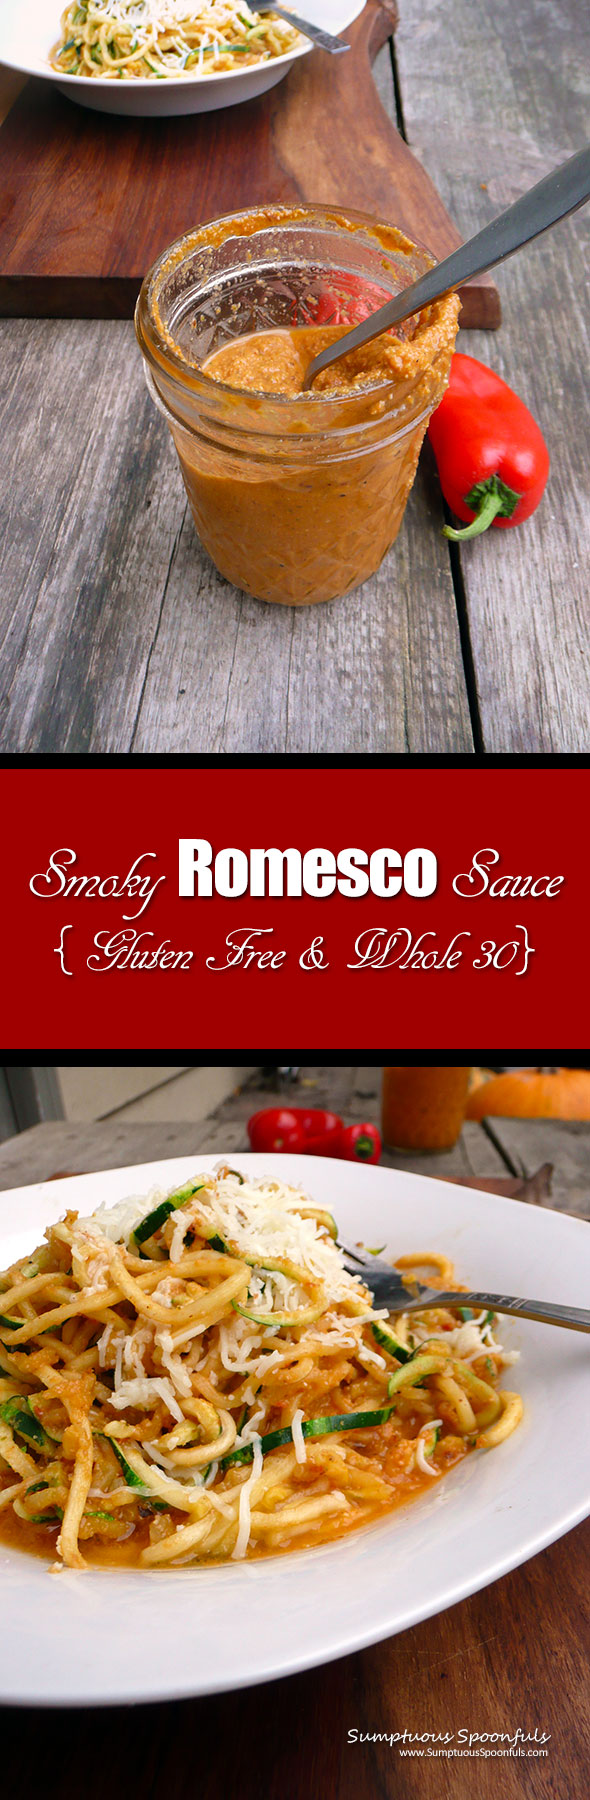 Smoky Romesco Sauce (Gluten free & Whole 30) ~ Sumptuous Spoonfuls #healthy #sauce #recipe